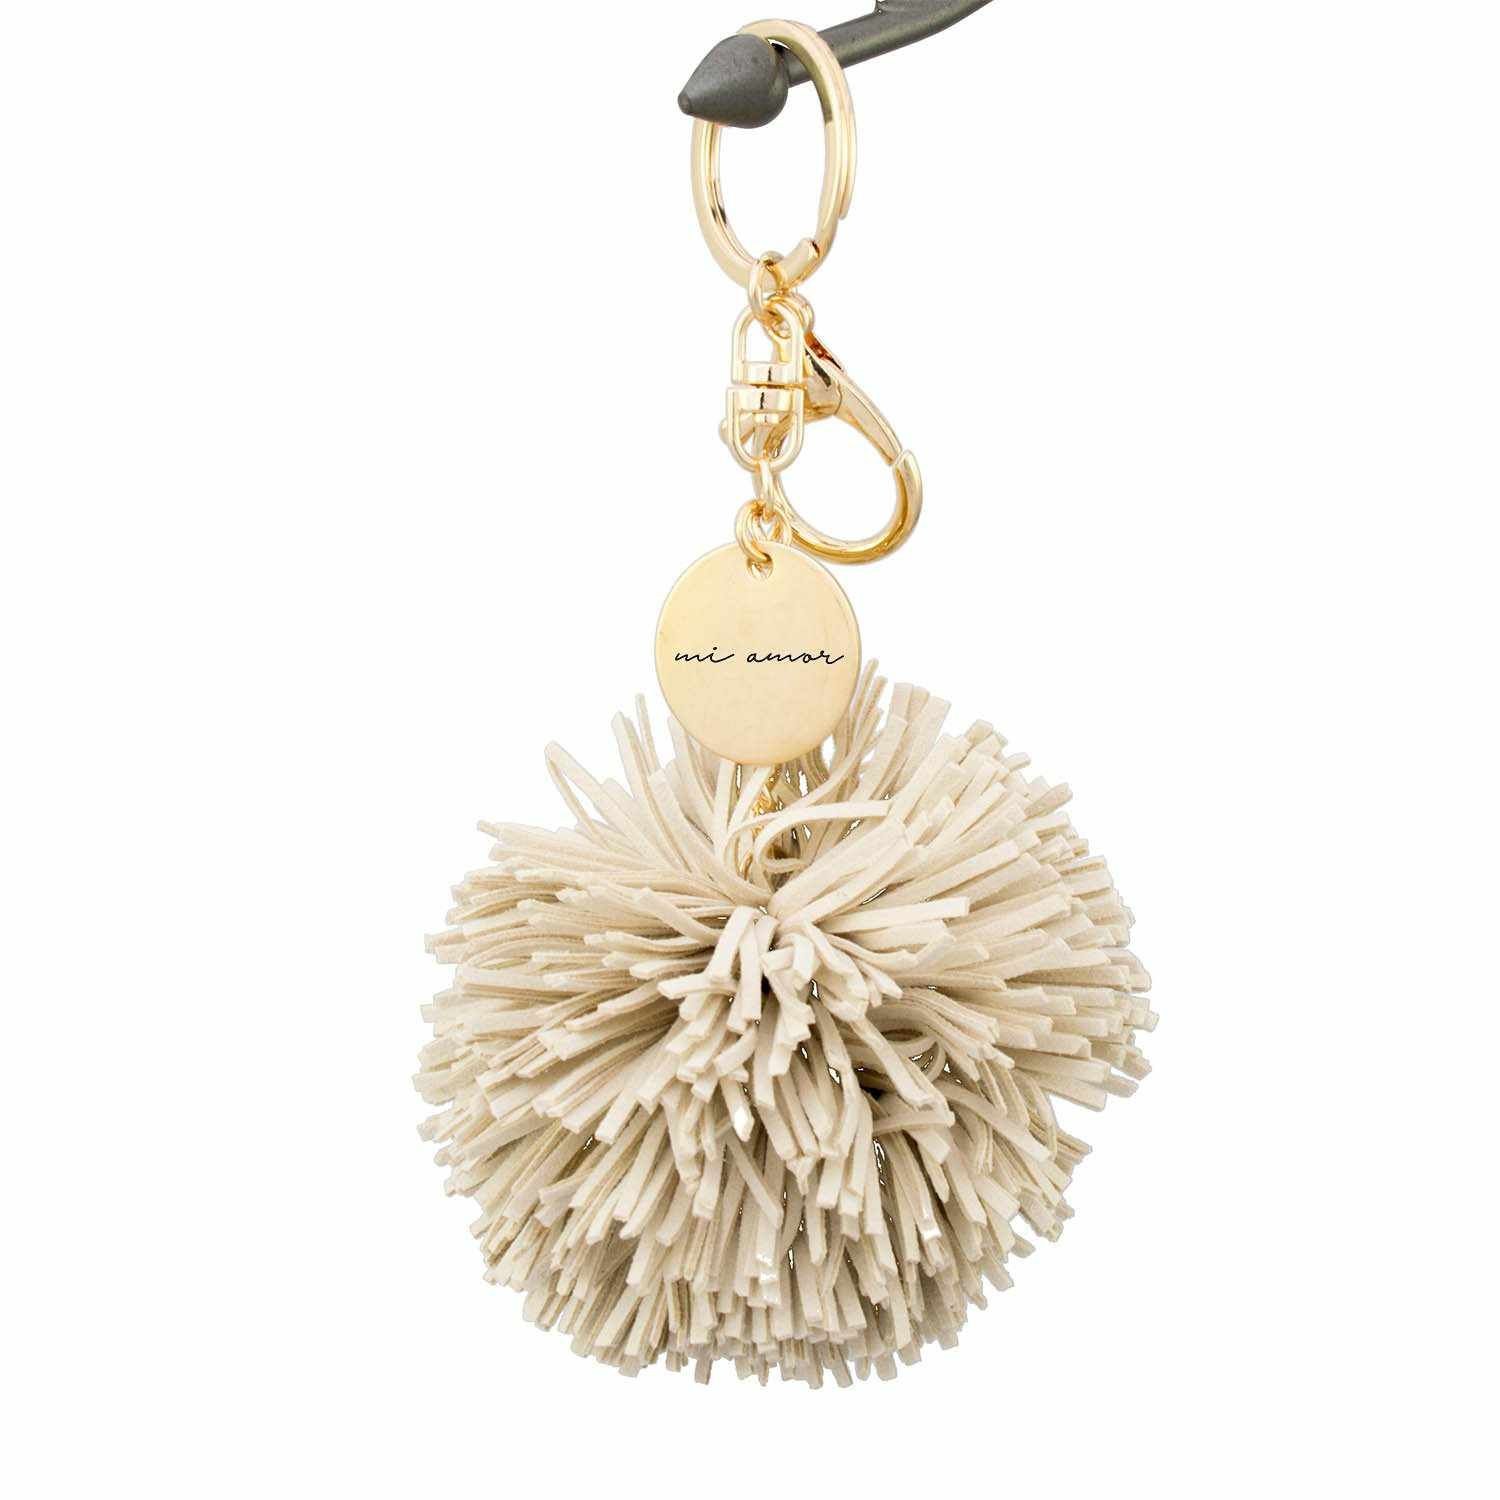 Handmade suede pom tassel keychain. This stylish keychain is made of luxe suede and comes in 5 chic colors. Clip to your tote, purse or add your keys for a keychain that's super easy to find in your bag! Features a charm with your choice of Italian love phrase laser-engraved. Makes the most romantic gift for your wife or girlfriend for Valentine's Day, birthdays or anniversaries. Love Phrase Italian to English Translation:Vita Mia - My LifePer Sempre - ForeverTi Amo - I love YouMi Amor - My Love